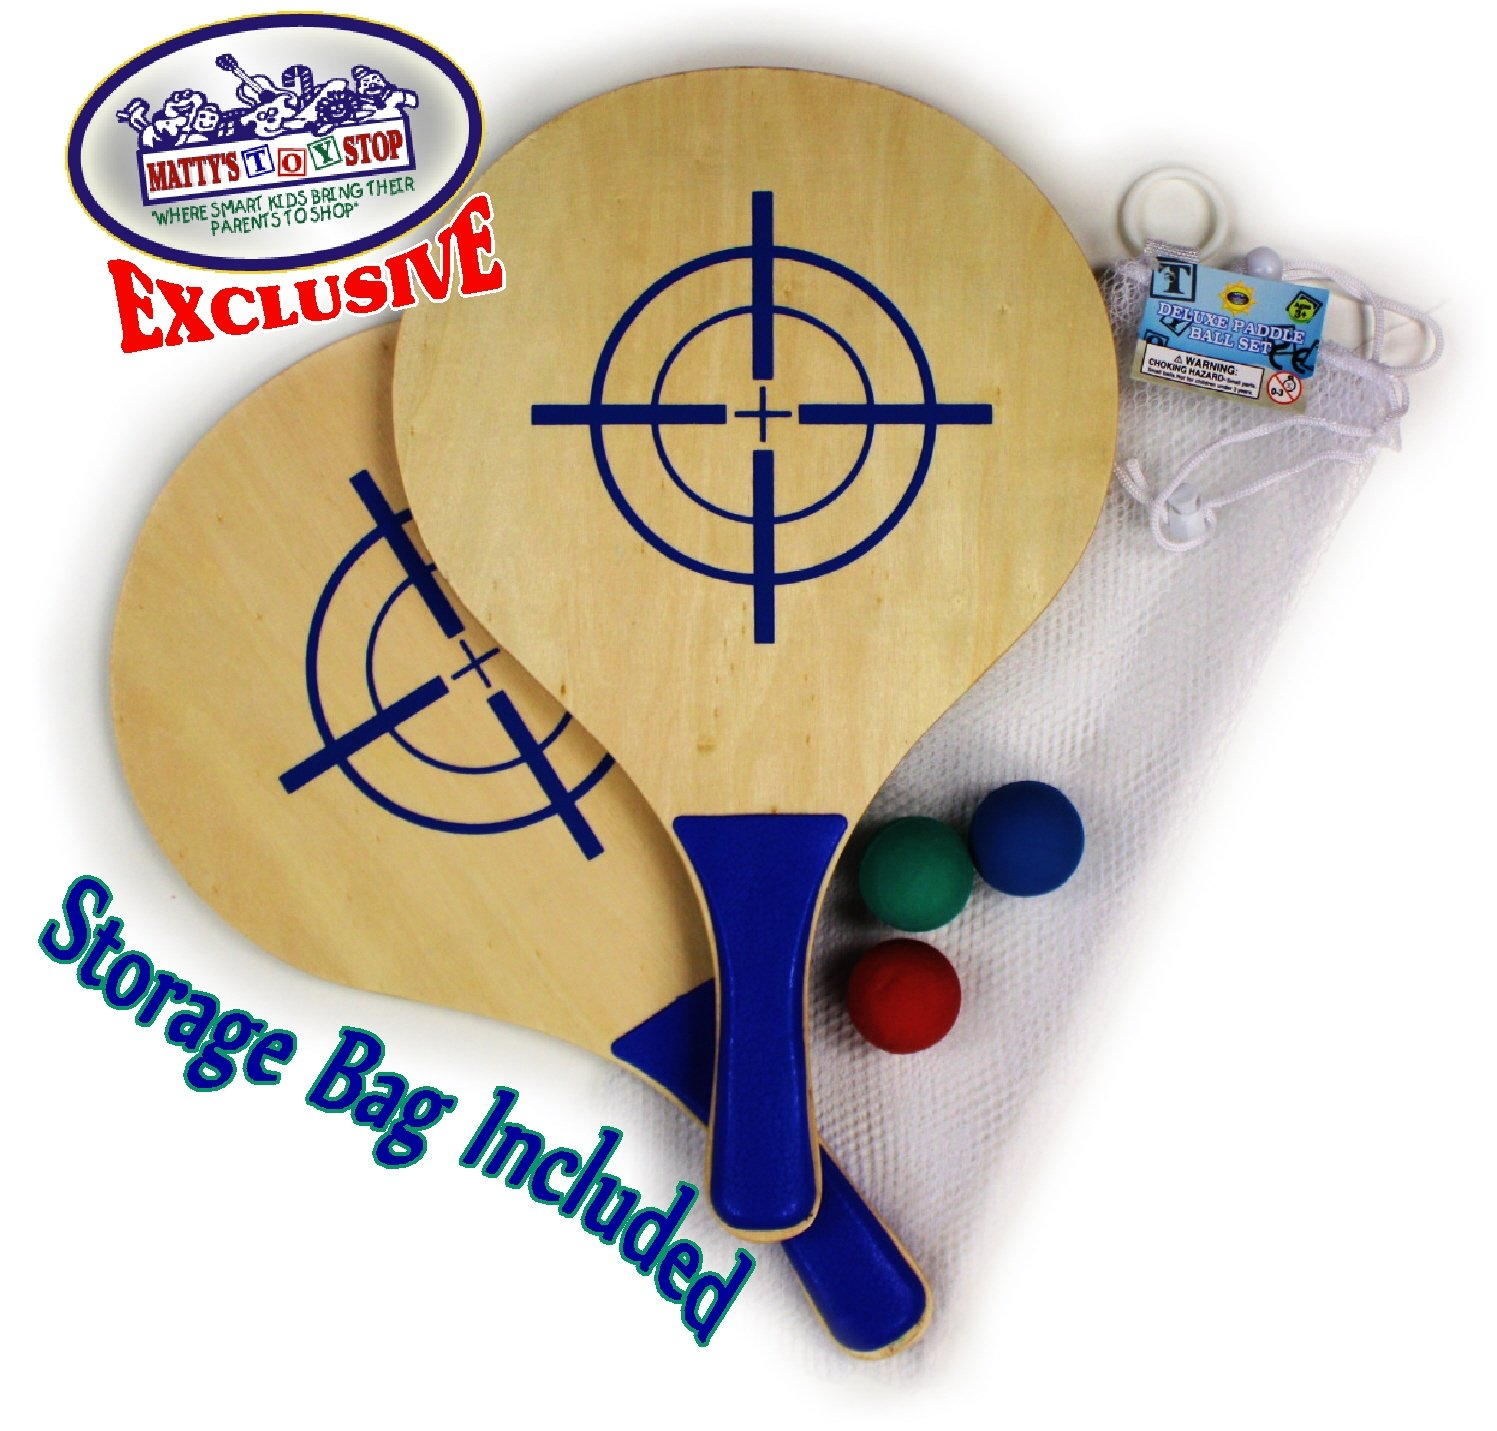 Matty's Toy Stop Deluxe Wooden Paddle Ball Game Set with 3 Solid Rubber Balls & Mesh Storage Bag by Matty's Toy Stop